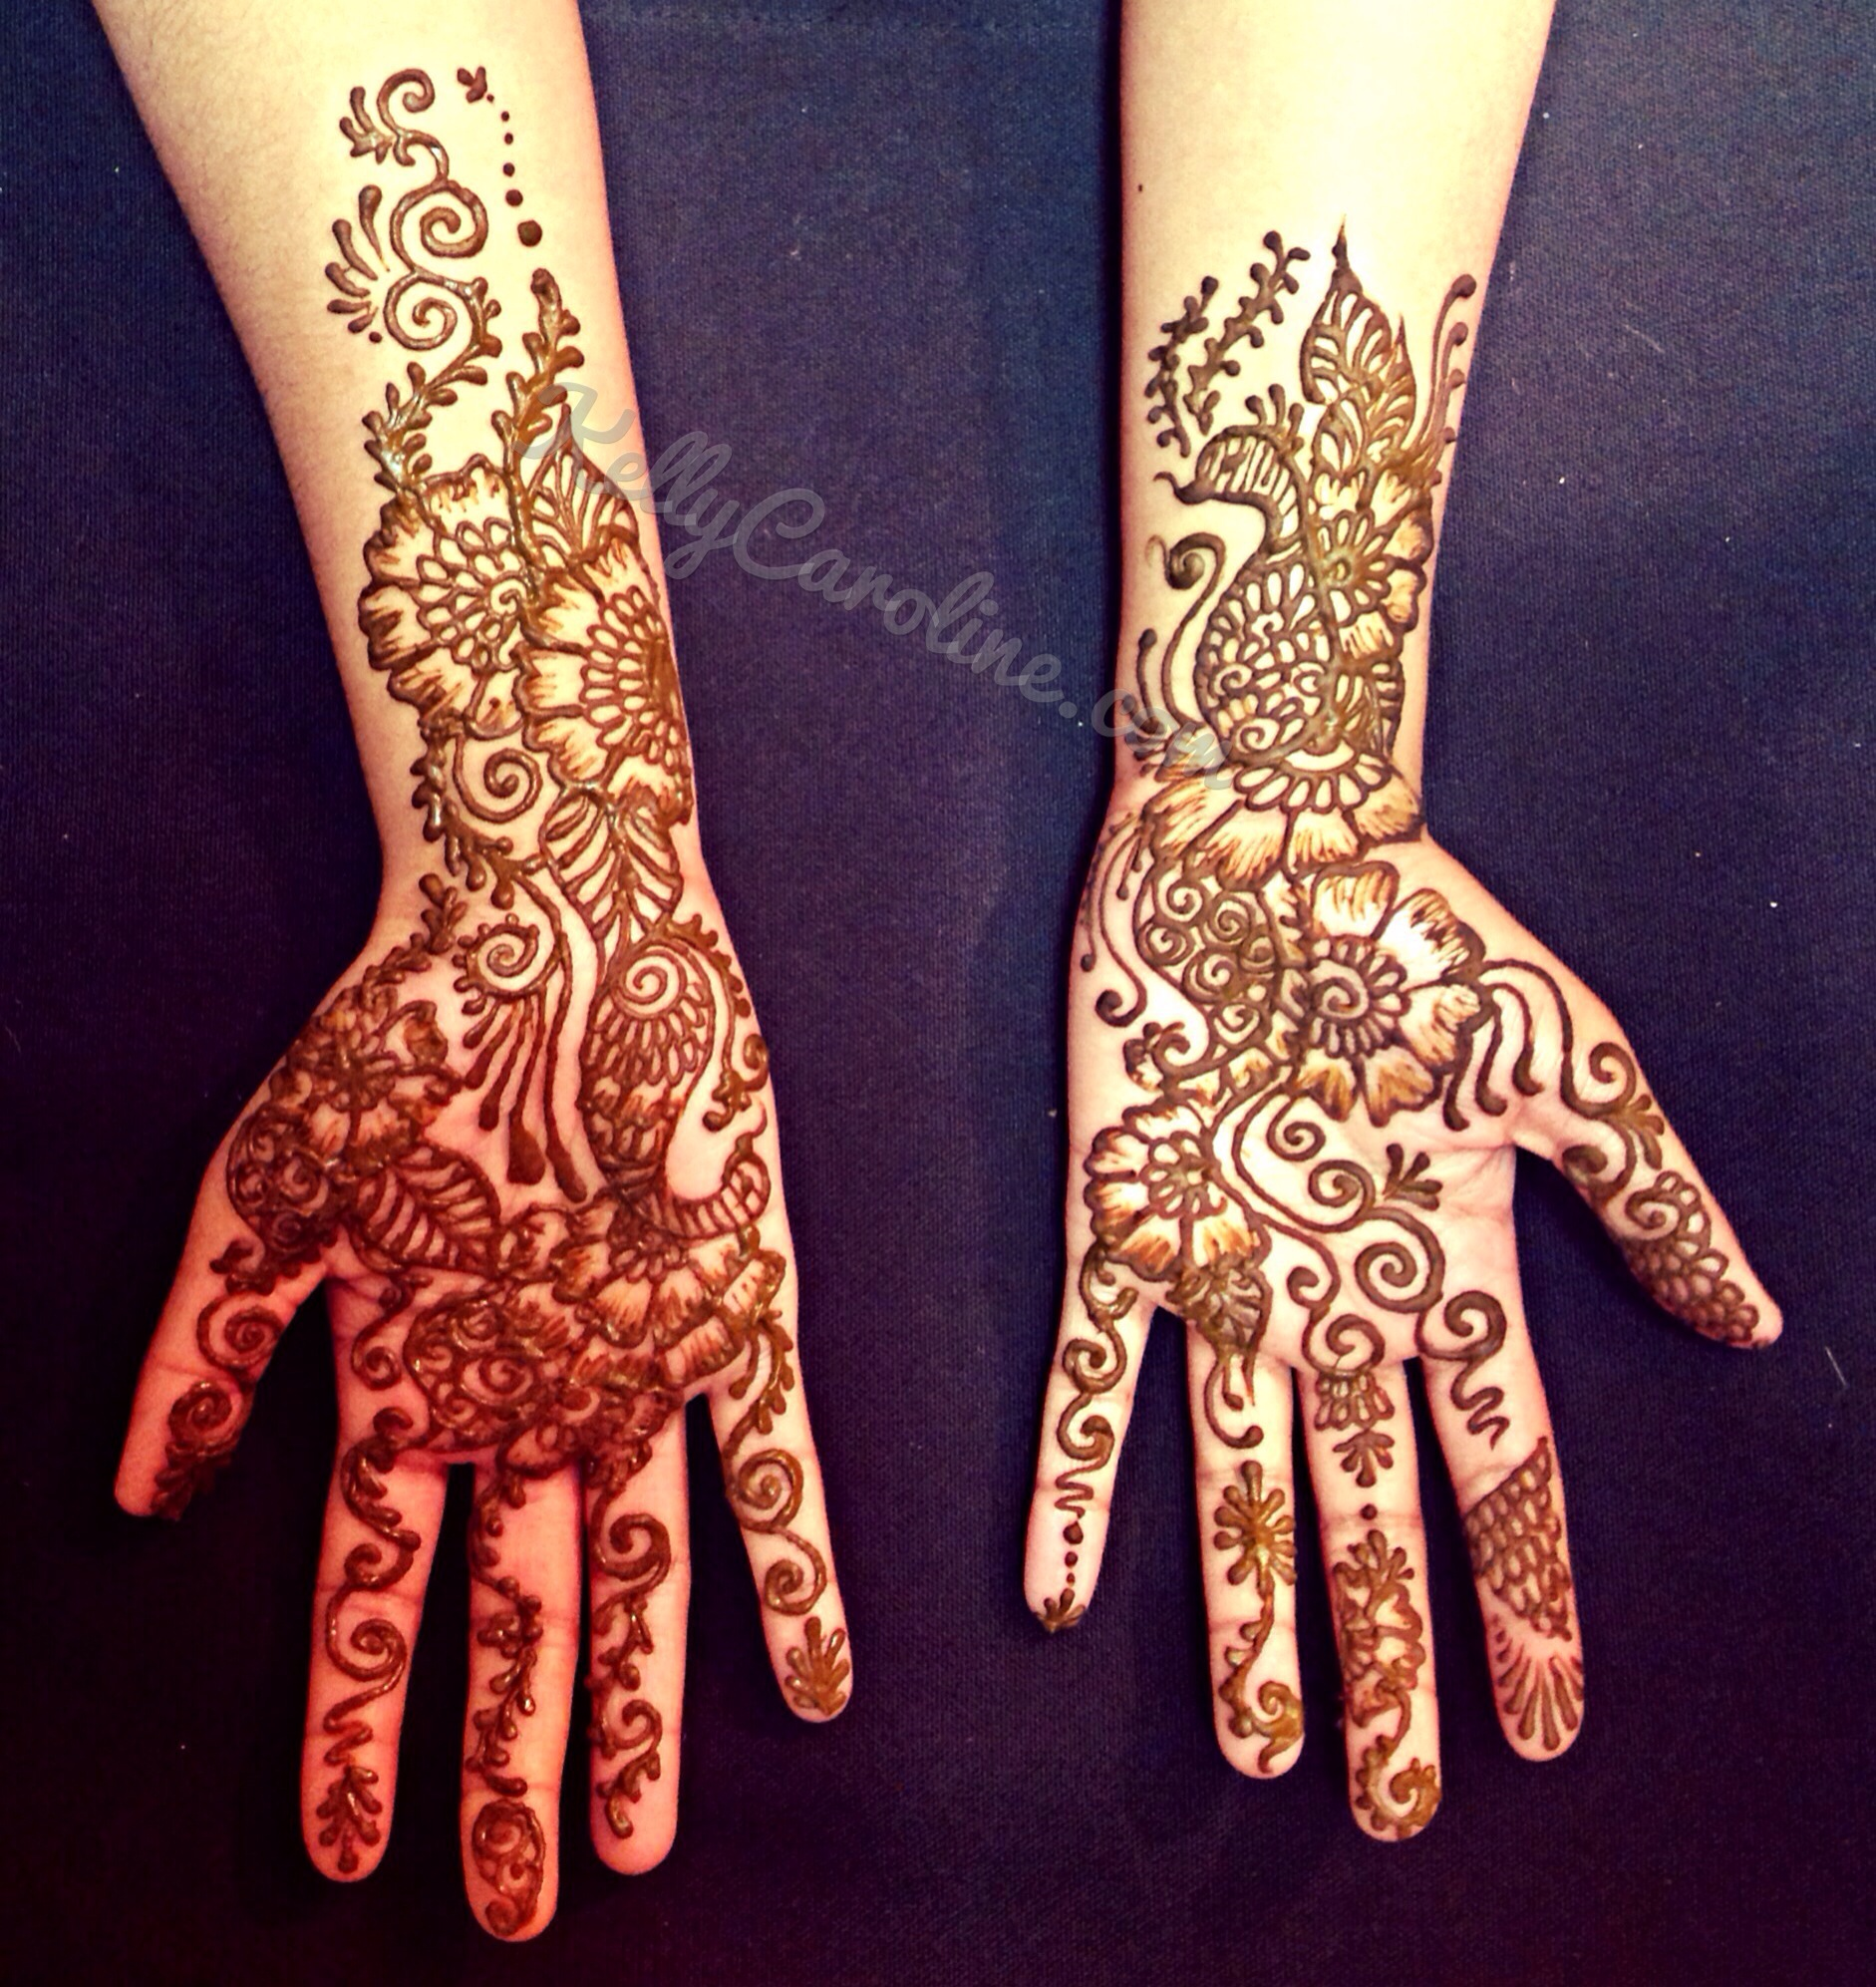 henna for weddings, sister of the bride, henna design, henna on palms